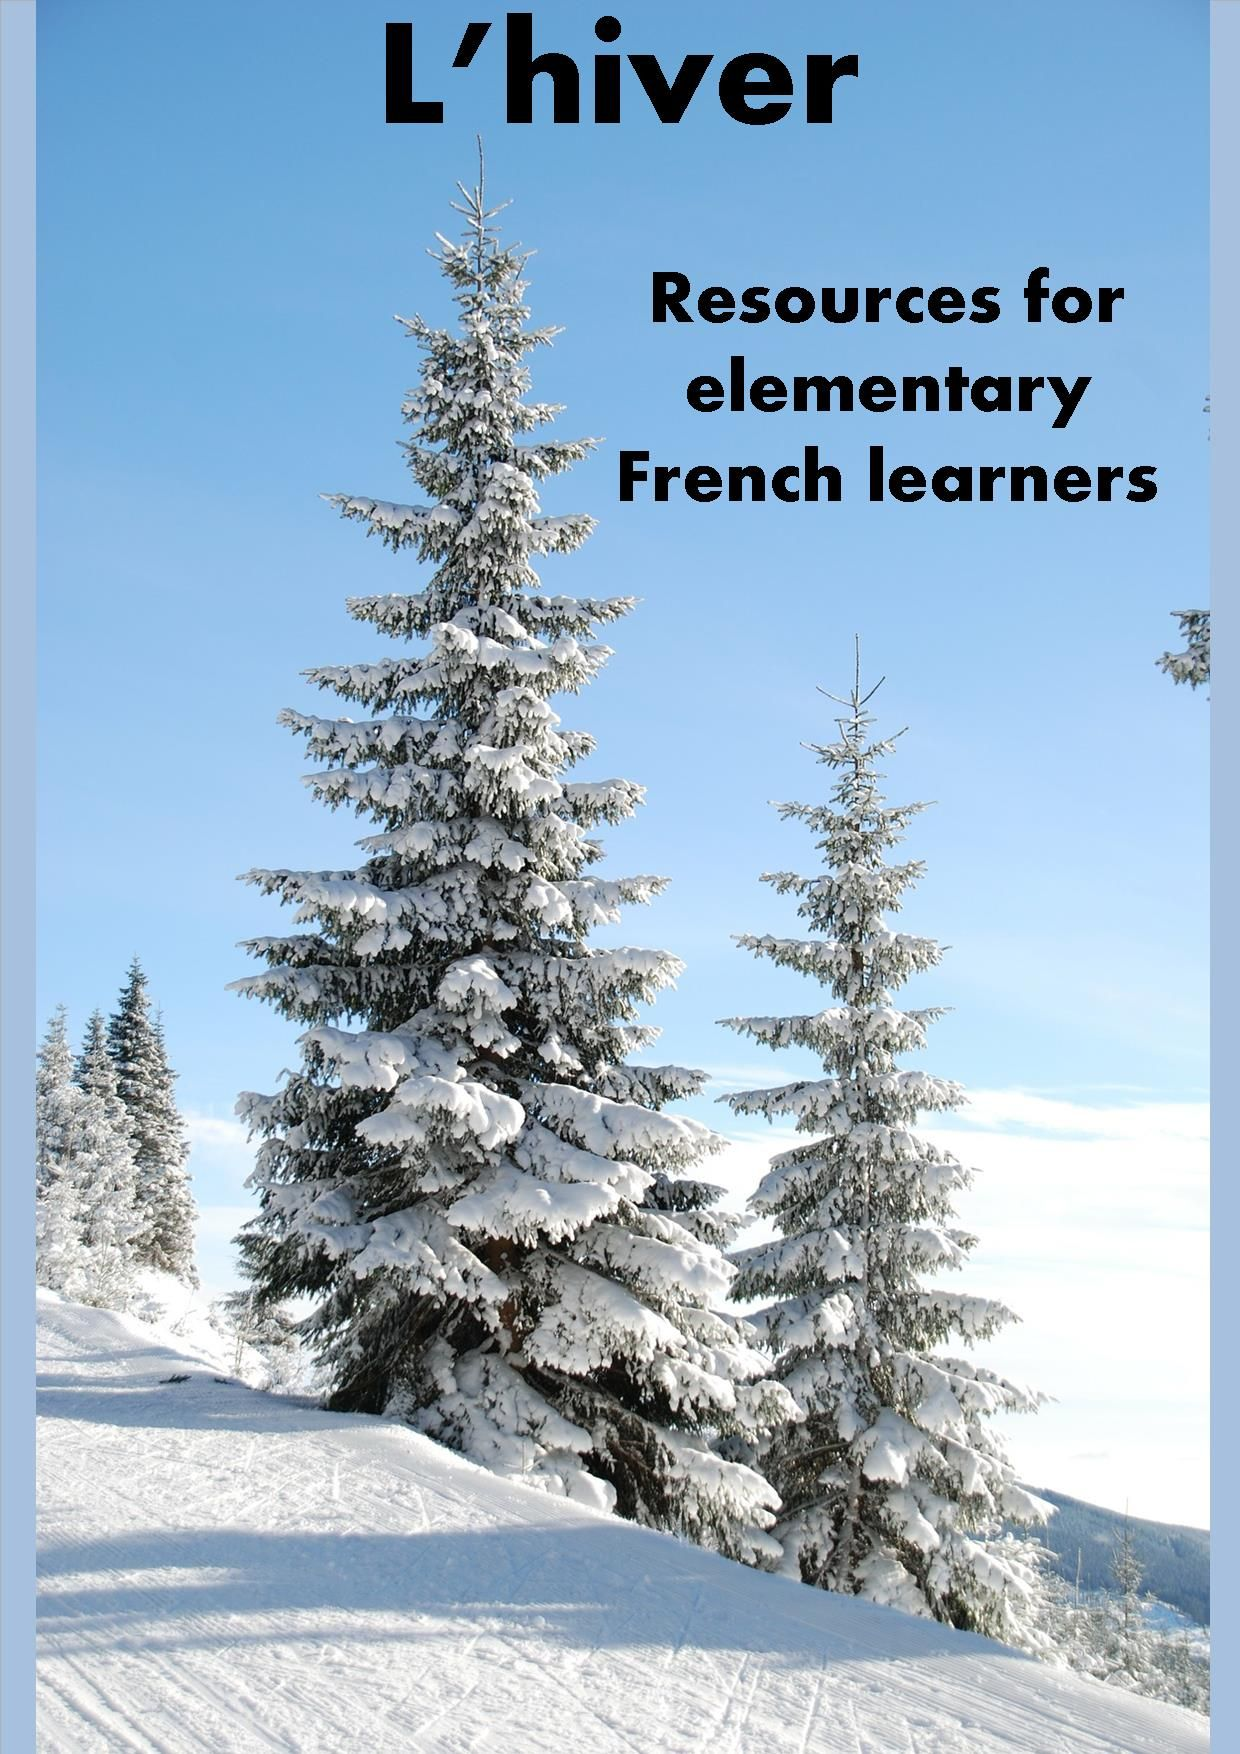 French Winter - Hiver - worksheets, handouts, activities | Student ...